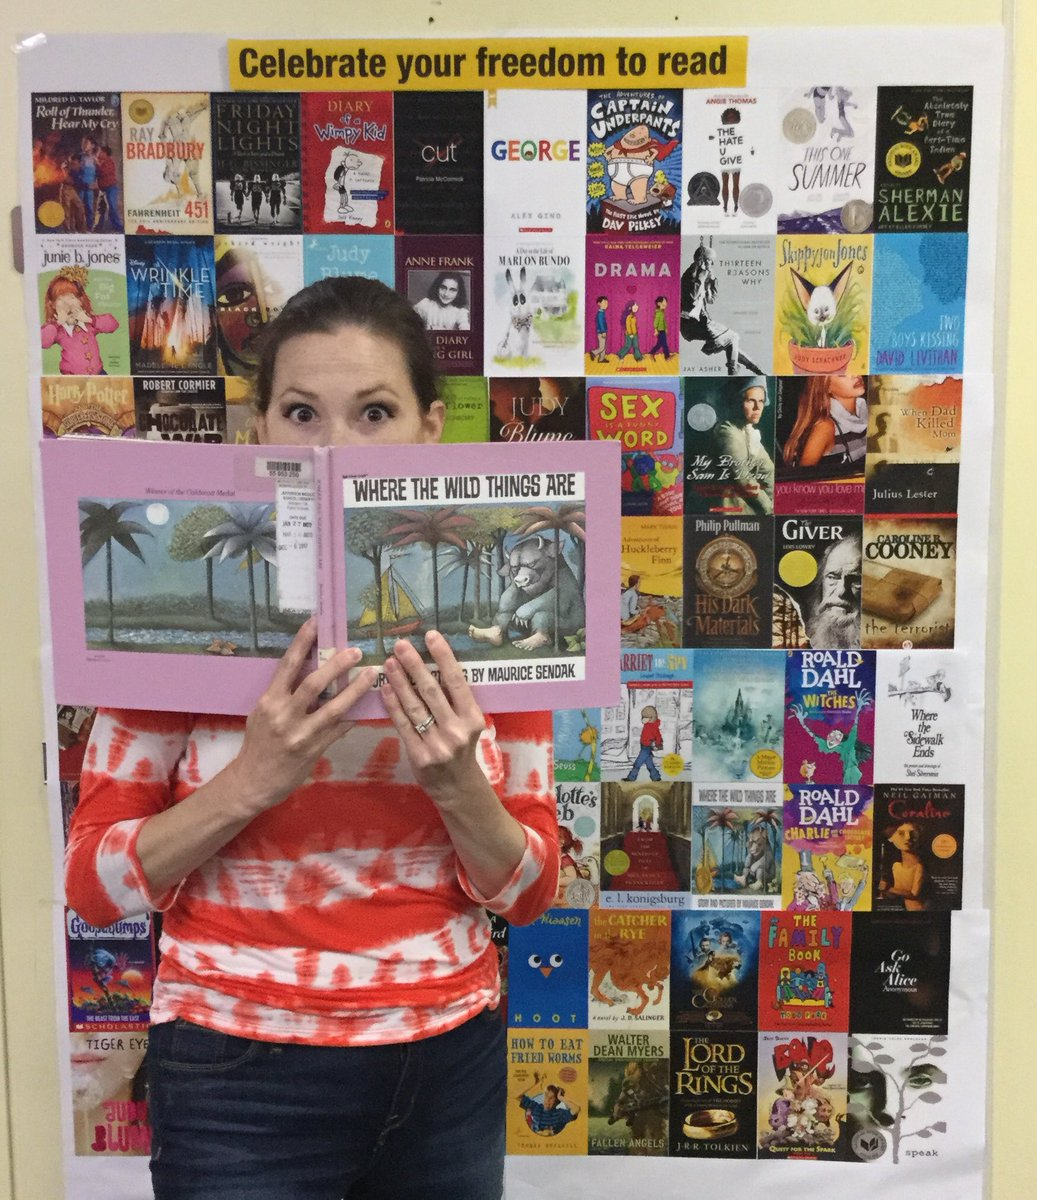 Coming up on the end of Banned Books Week, here's a throwback to last years banned books wall photo booth. At Jefferson we encourage you to read anything you're interested in! <a target='_blank' href='http://twitter.com/KeishaBoggan'>@KeishaBoggan</a> <a target='_blank' href='http://twitter.com/mslarsontjms'>@mslarsontjms</a> <a target='_blank' href='http://twitter.com/MrsD_reading'>@MrsD_reading</a> <a target='_blank' href='http://twitter.com/DJordanAPS'>@DJordanAPS</a> <a target='_blank' href='http://twitter.com/APSLibrarians'>@APSLibrarians</a> <a target='_blank' href='http://search.twitter.com/search?q=jeffersonreads'><a target='_blank' href='https://twitter.com/hashtag/jeffersonreads?src=hash'>#jeffersonreads</a></a> <a target='_blank' href='http://twitter.com/JeffersonIBMYP'>@JeffersonIBMYP</a> <a target='_blank' href='https://t.co/Vp7GOQsBWm'>https://t.co/Vp7GOQsBWm</a>